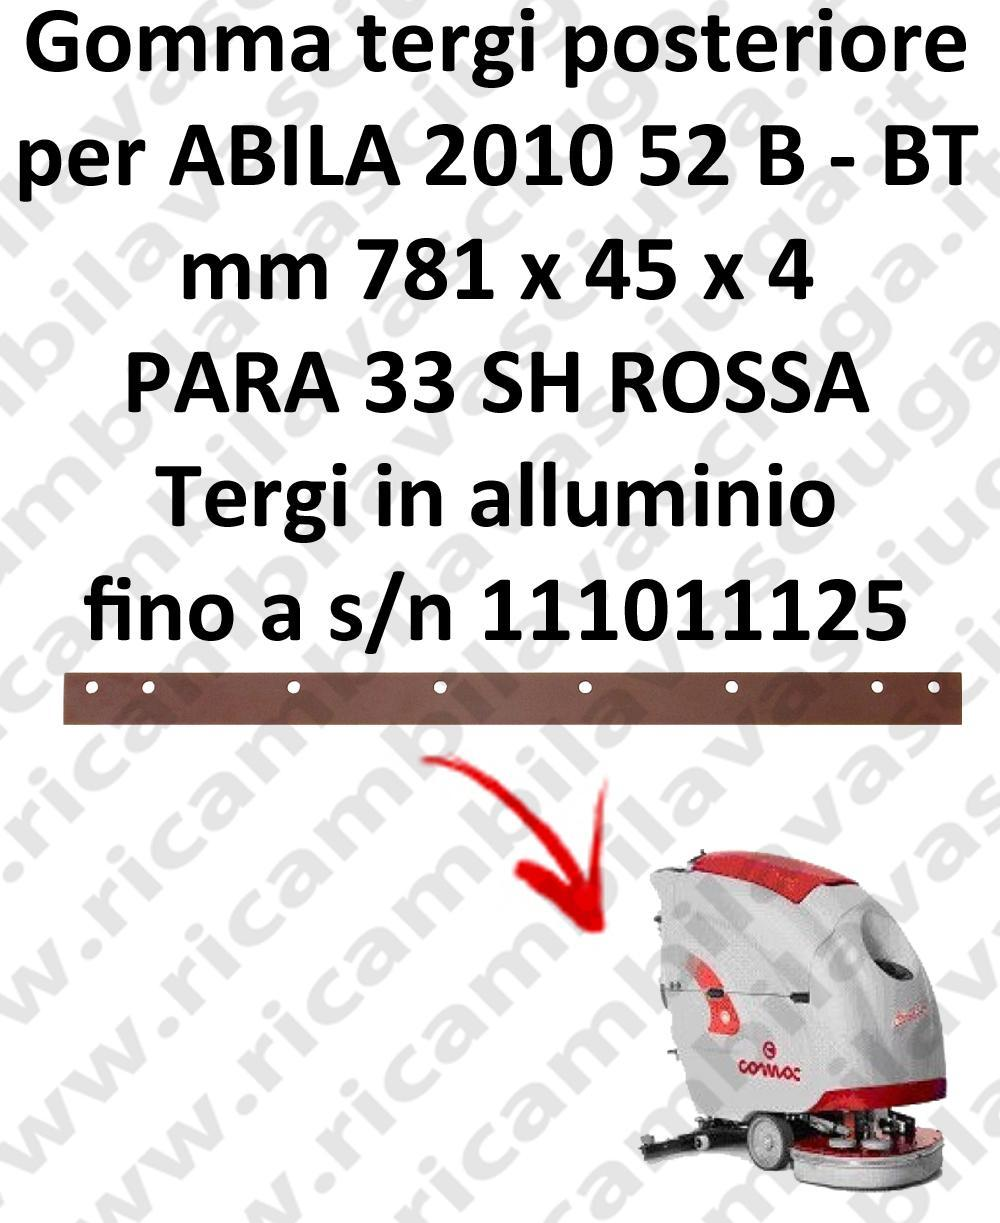 ABILA 2010 52 B - BT till s/n 111011125 Back Squeegee rubber for COMAC accessories, reaplacement, spare parts,o scrubber dryer squeegee